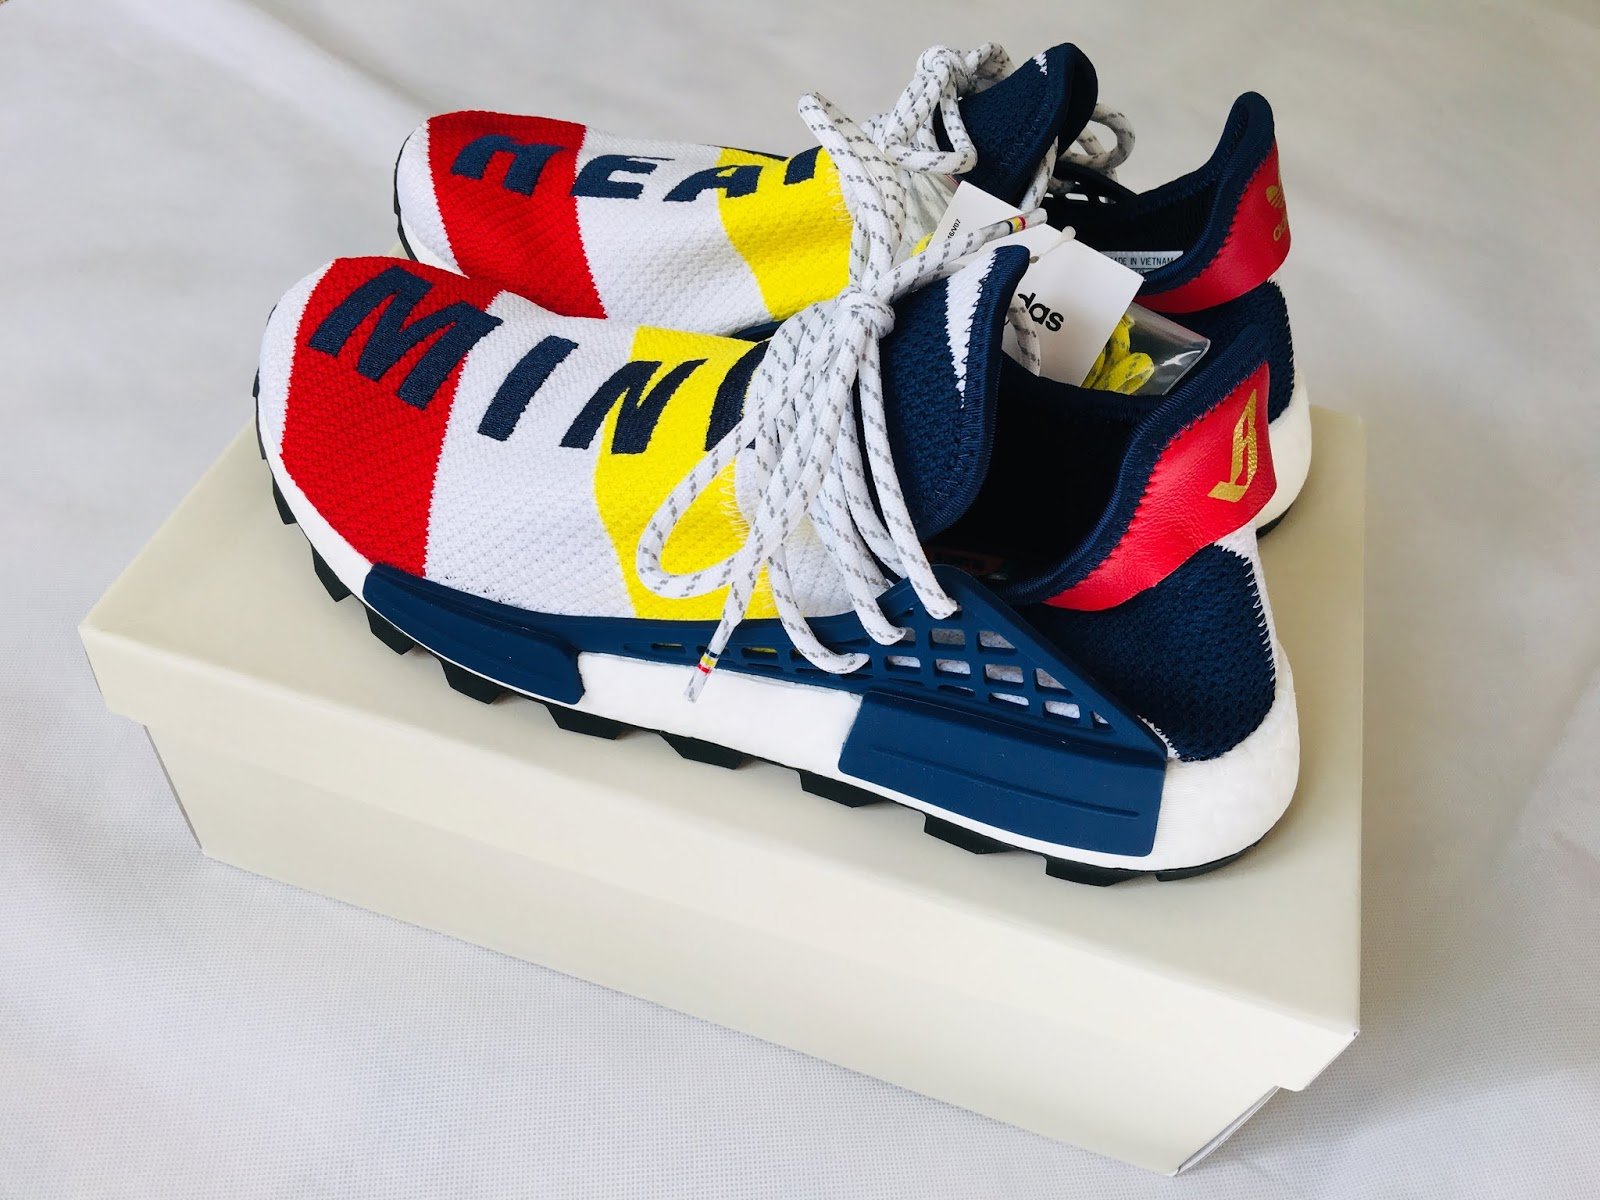 0fba64be66738 Adidas x Pharrell Williams x Billionaire Boys Club HU NMD Sneakers BB9544